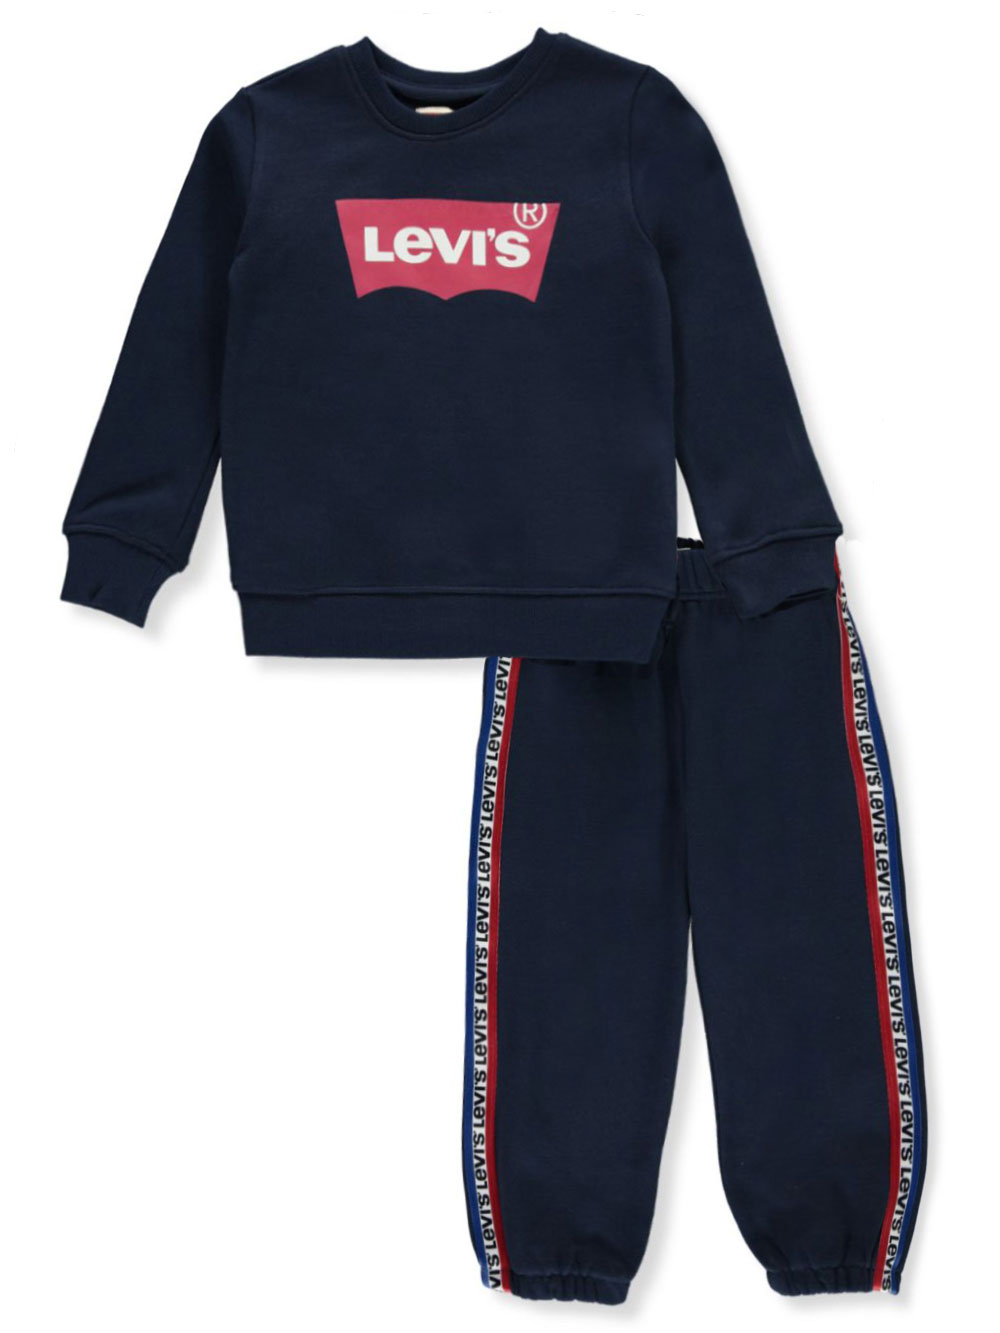 Boys' Logo Taped 2-Piece Sweatsuit Outfit